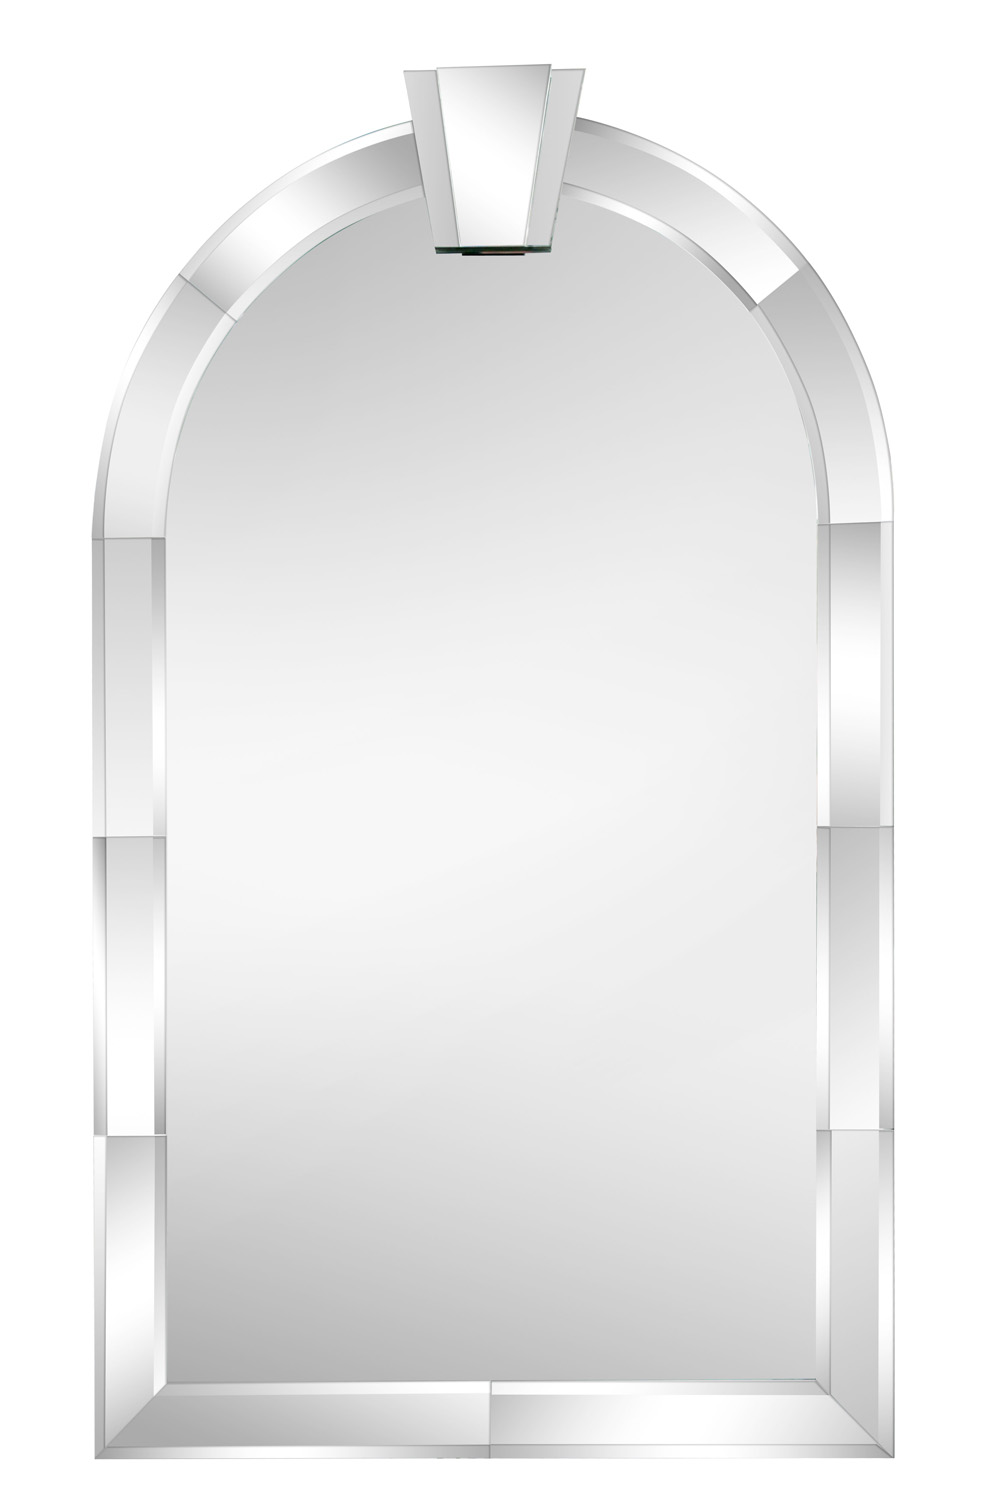 Springer 65 Dome Top Art Deco mirror182 hires.jpg